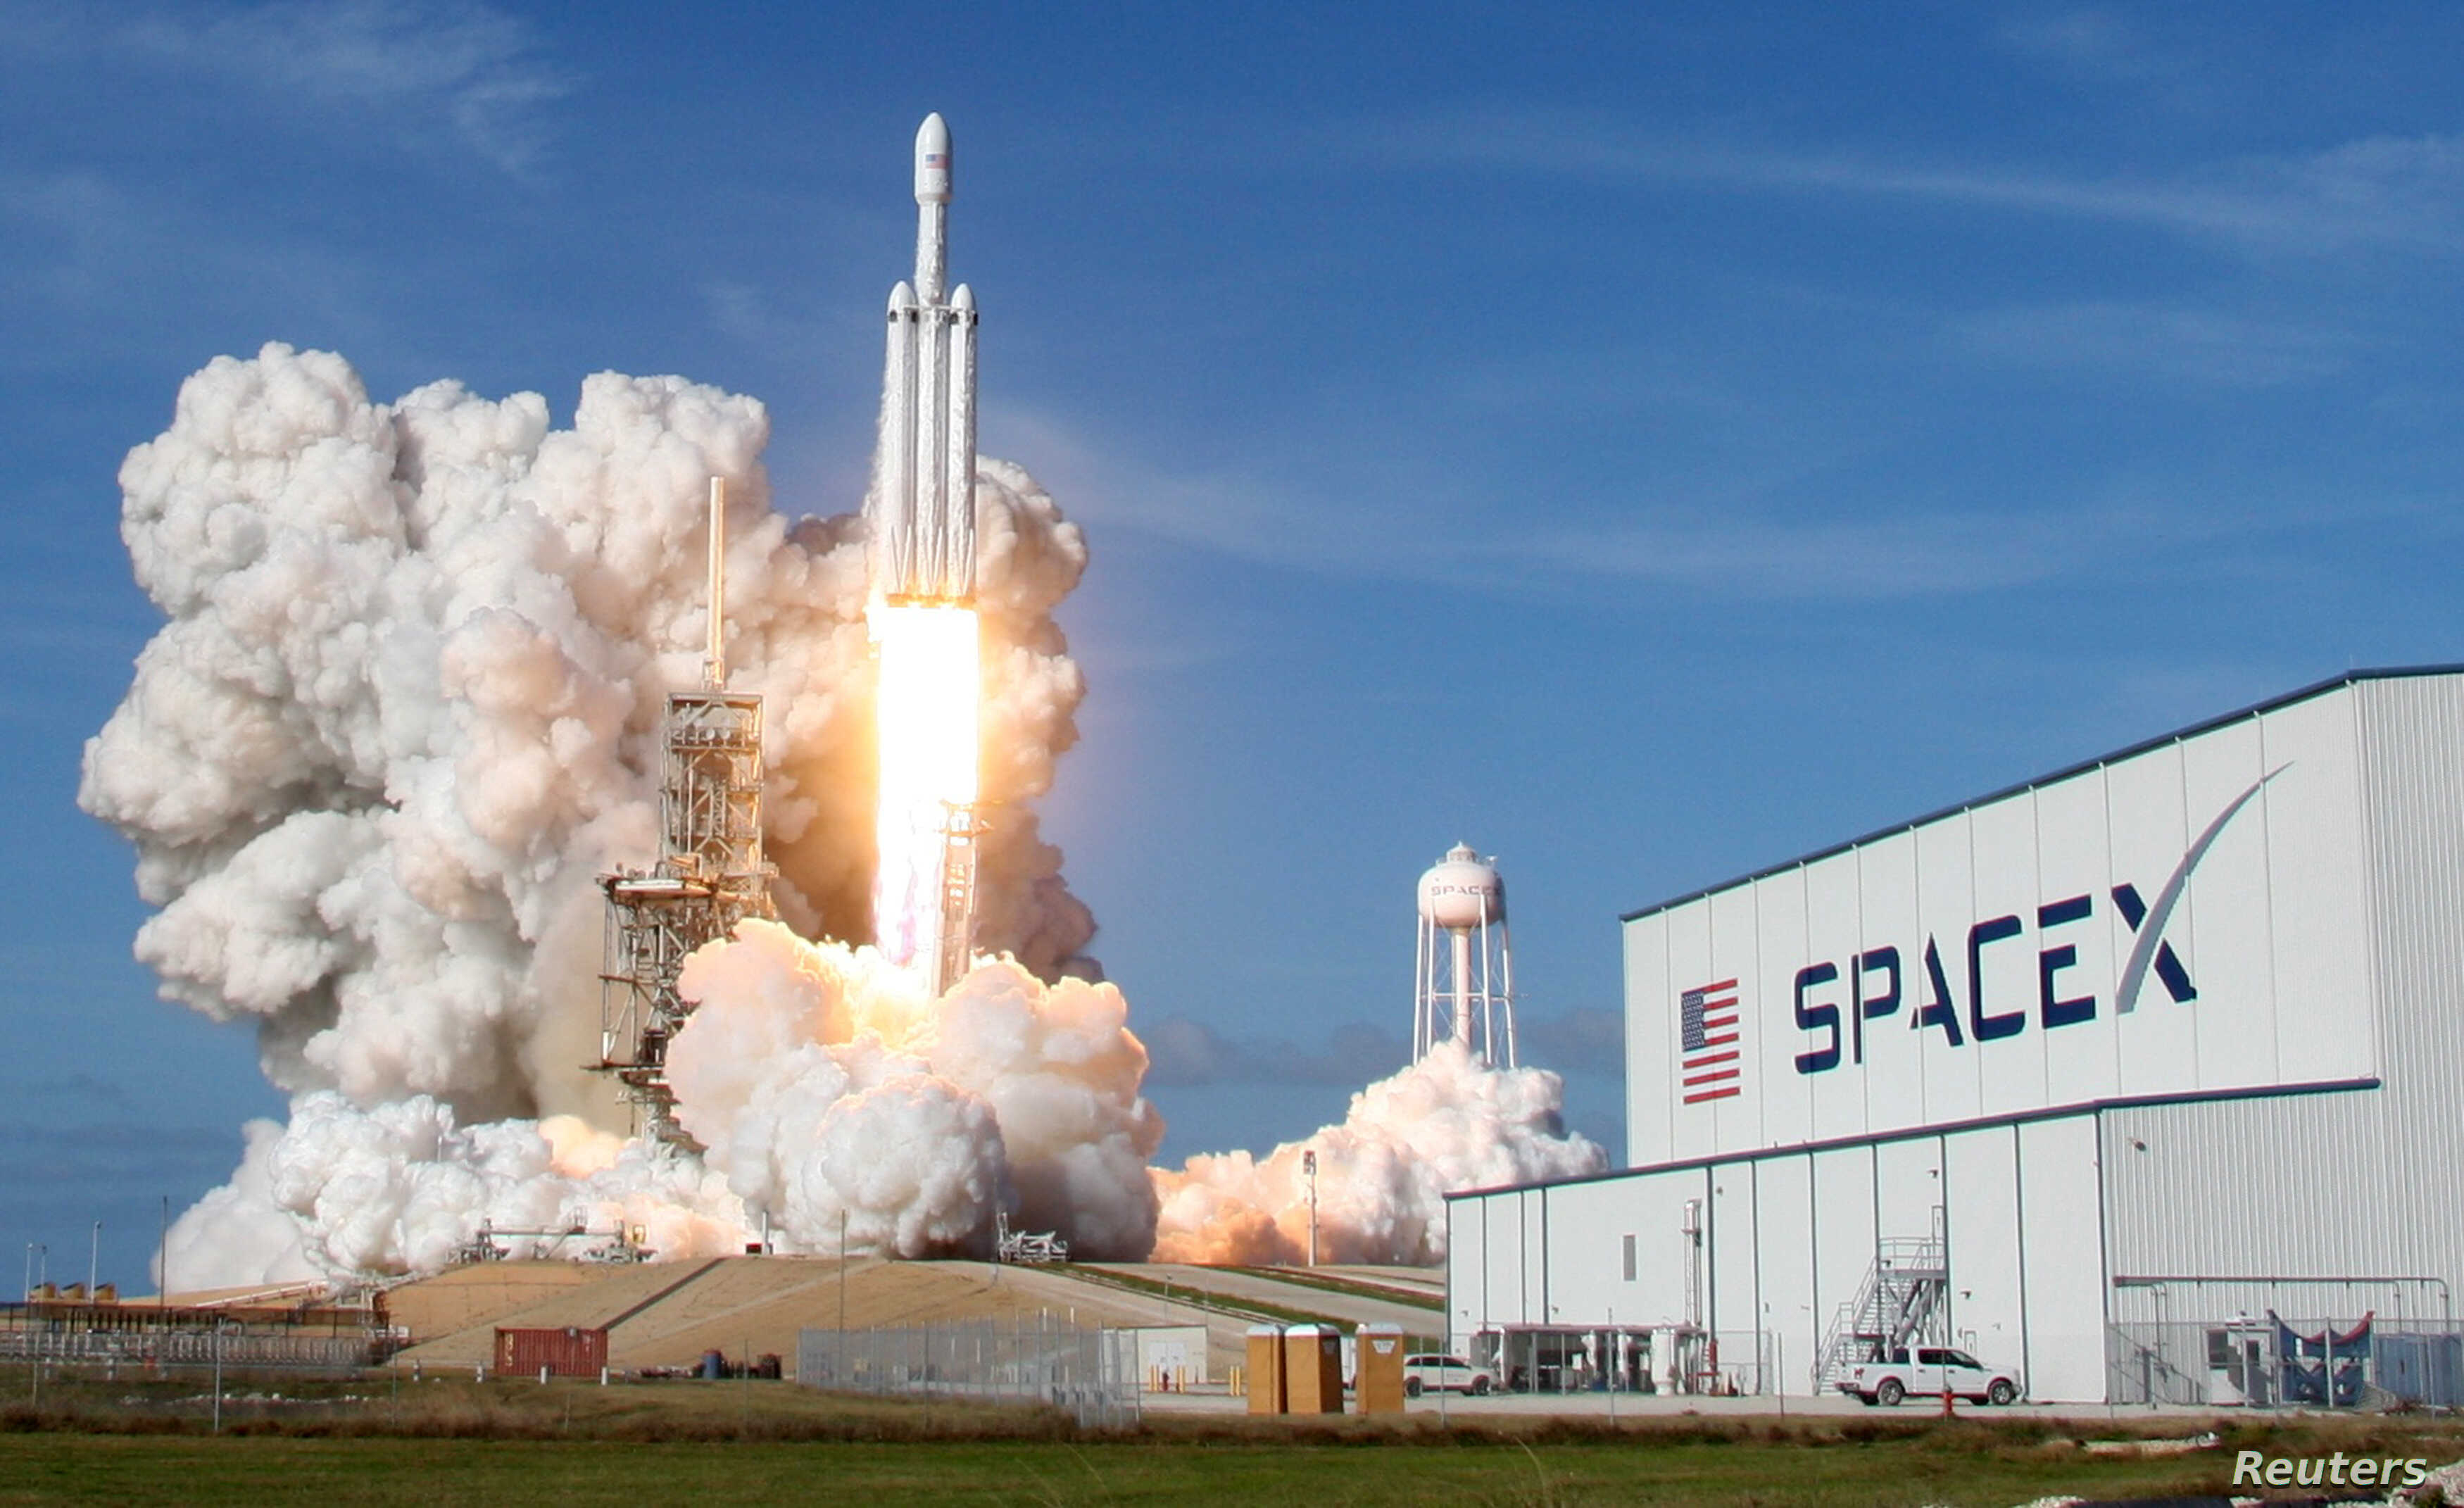 FILE PHOTO: A SpaceX Falcon Heavy rocket lifts off from historic launch pad 39-A at the Kennedy Space Center in Cape Canaveral, Florida, U.S., February 6, 2018. REUTERS/Thom Baur/File Photo - RC1F69D2BB40